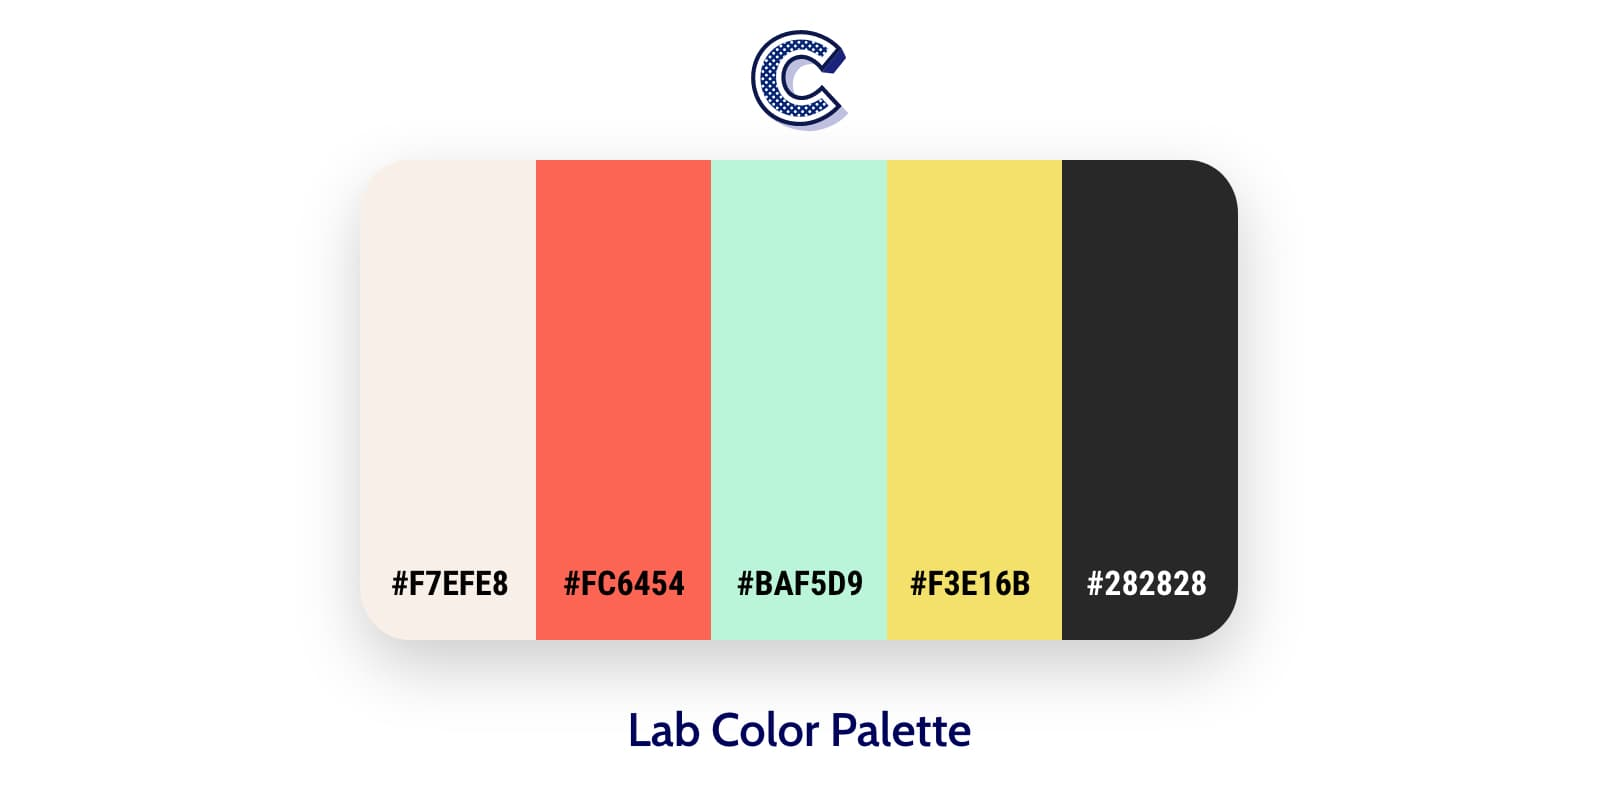 the featured image of lab color palette